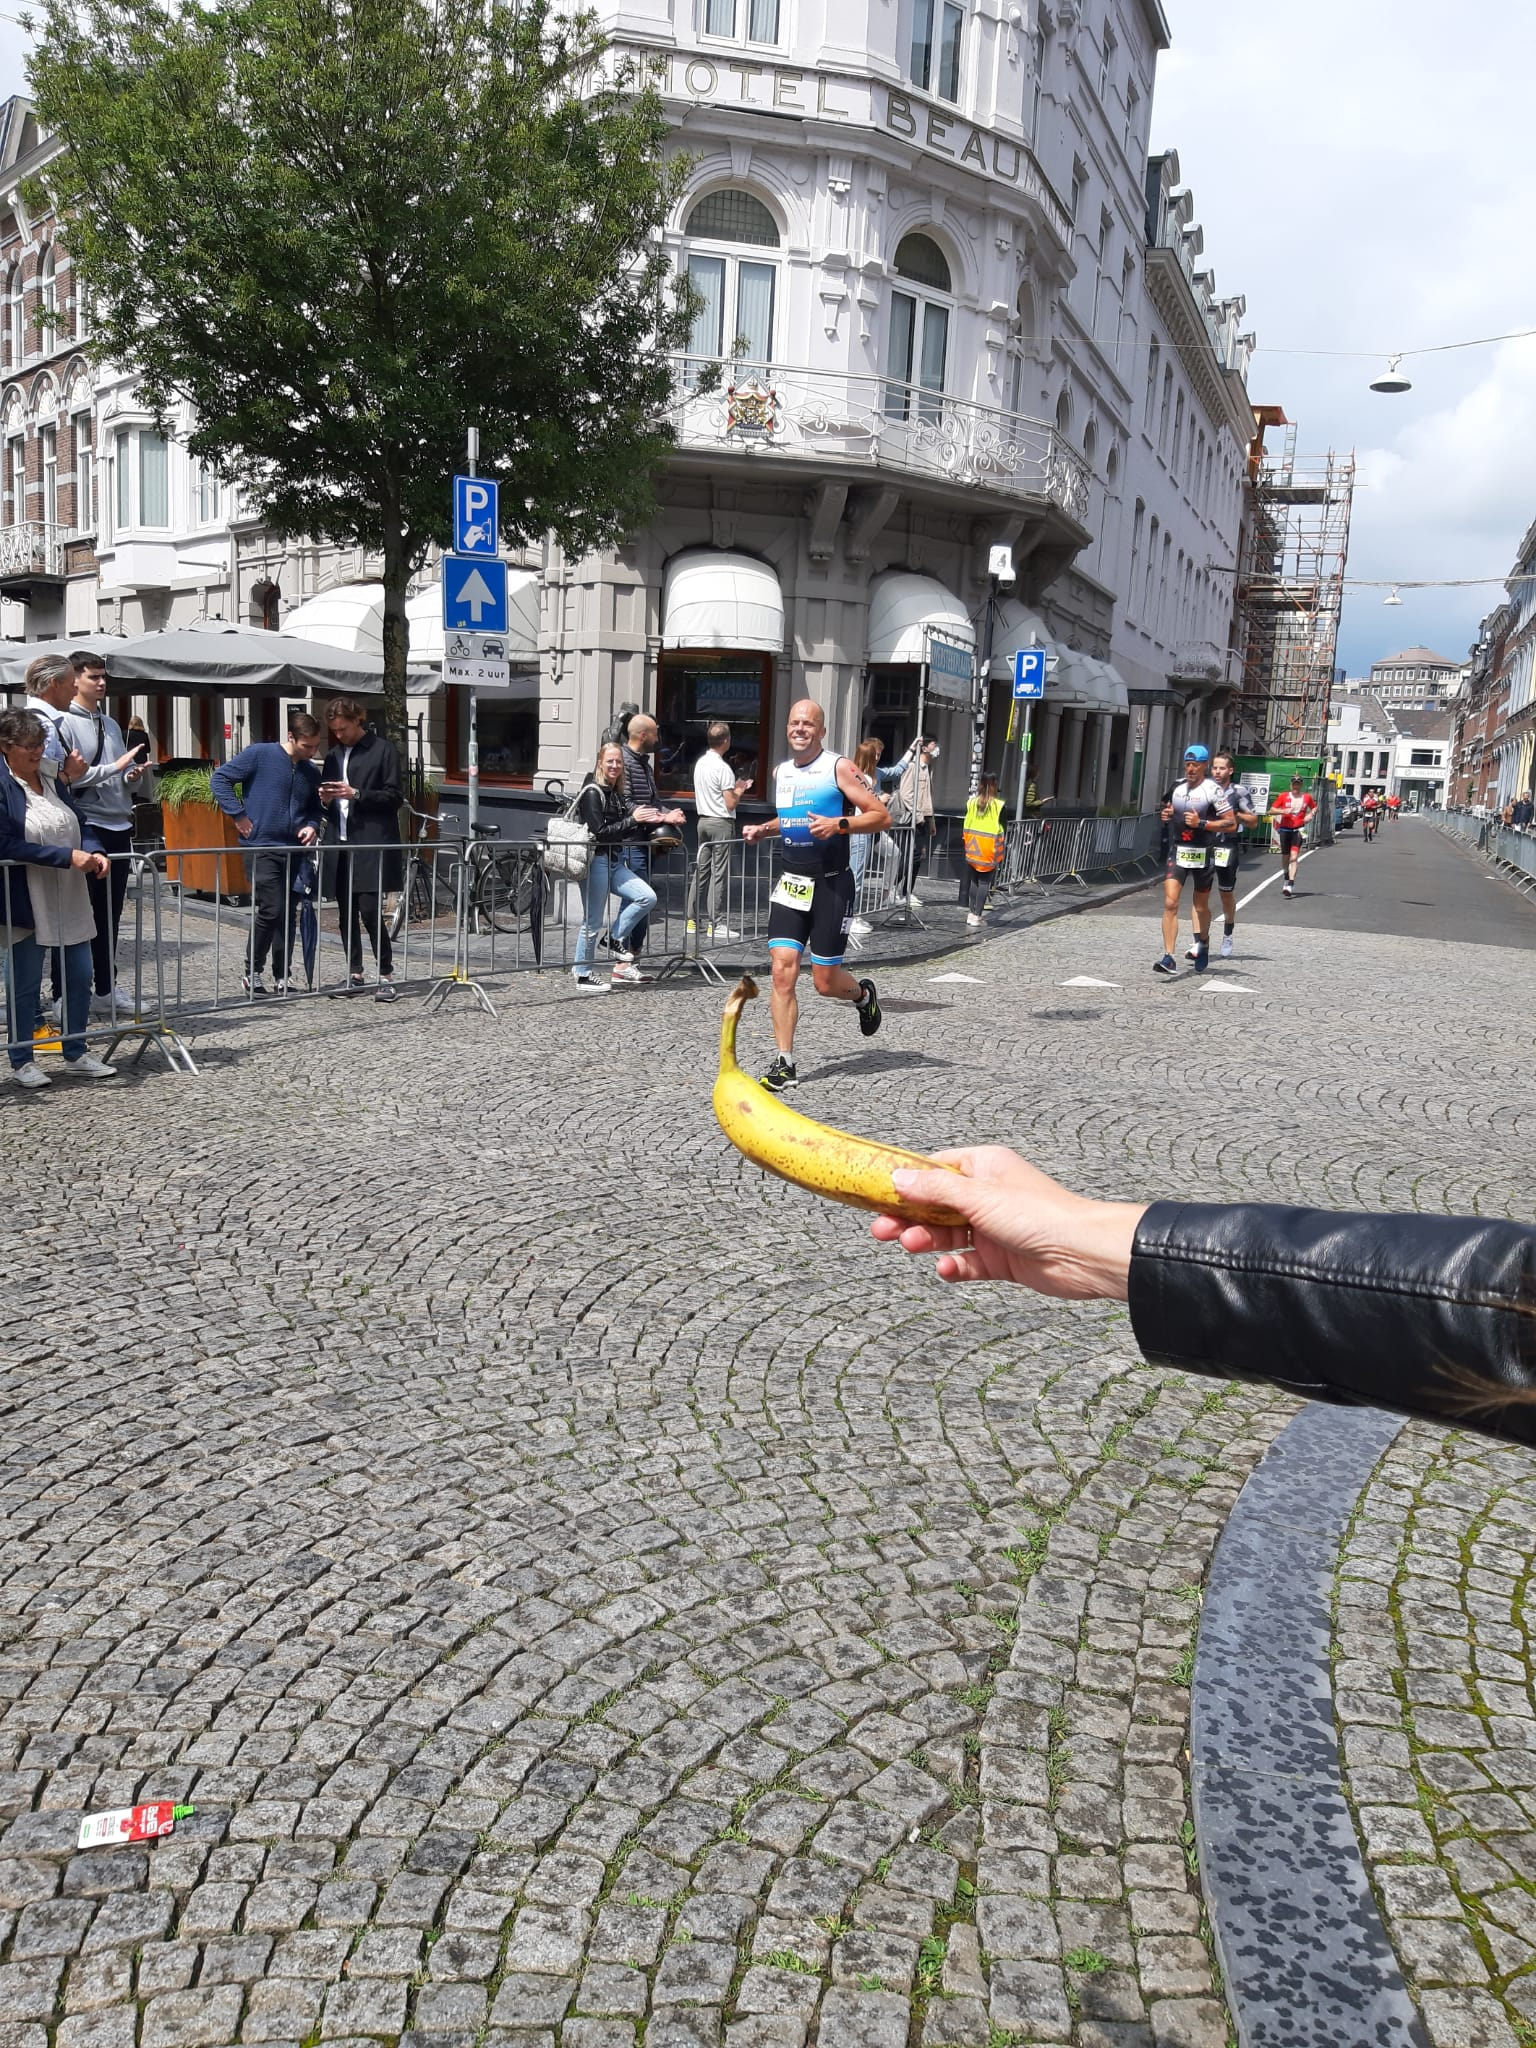 A person holding a banana  Description automatically generated with medium confidence